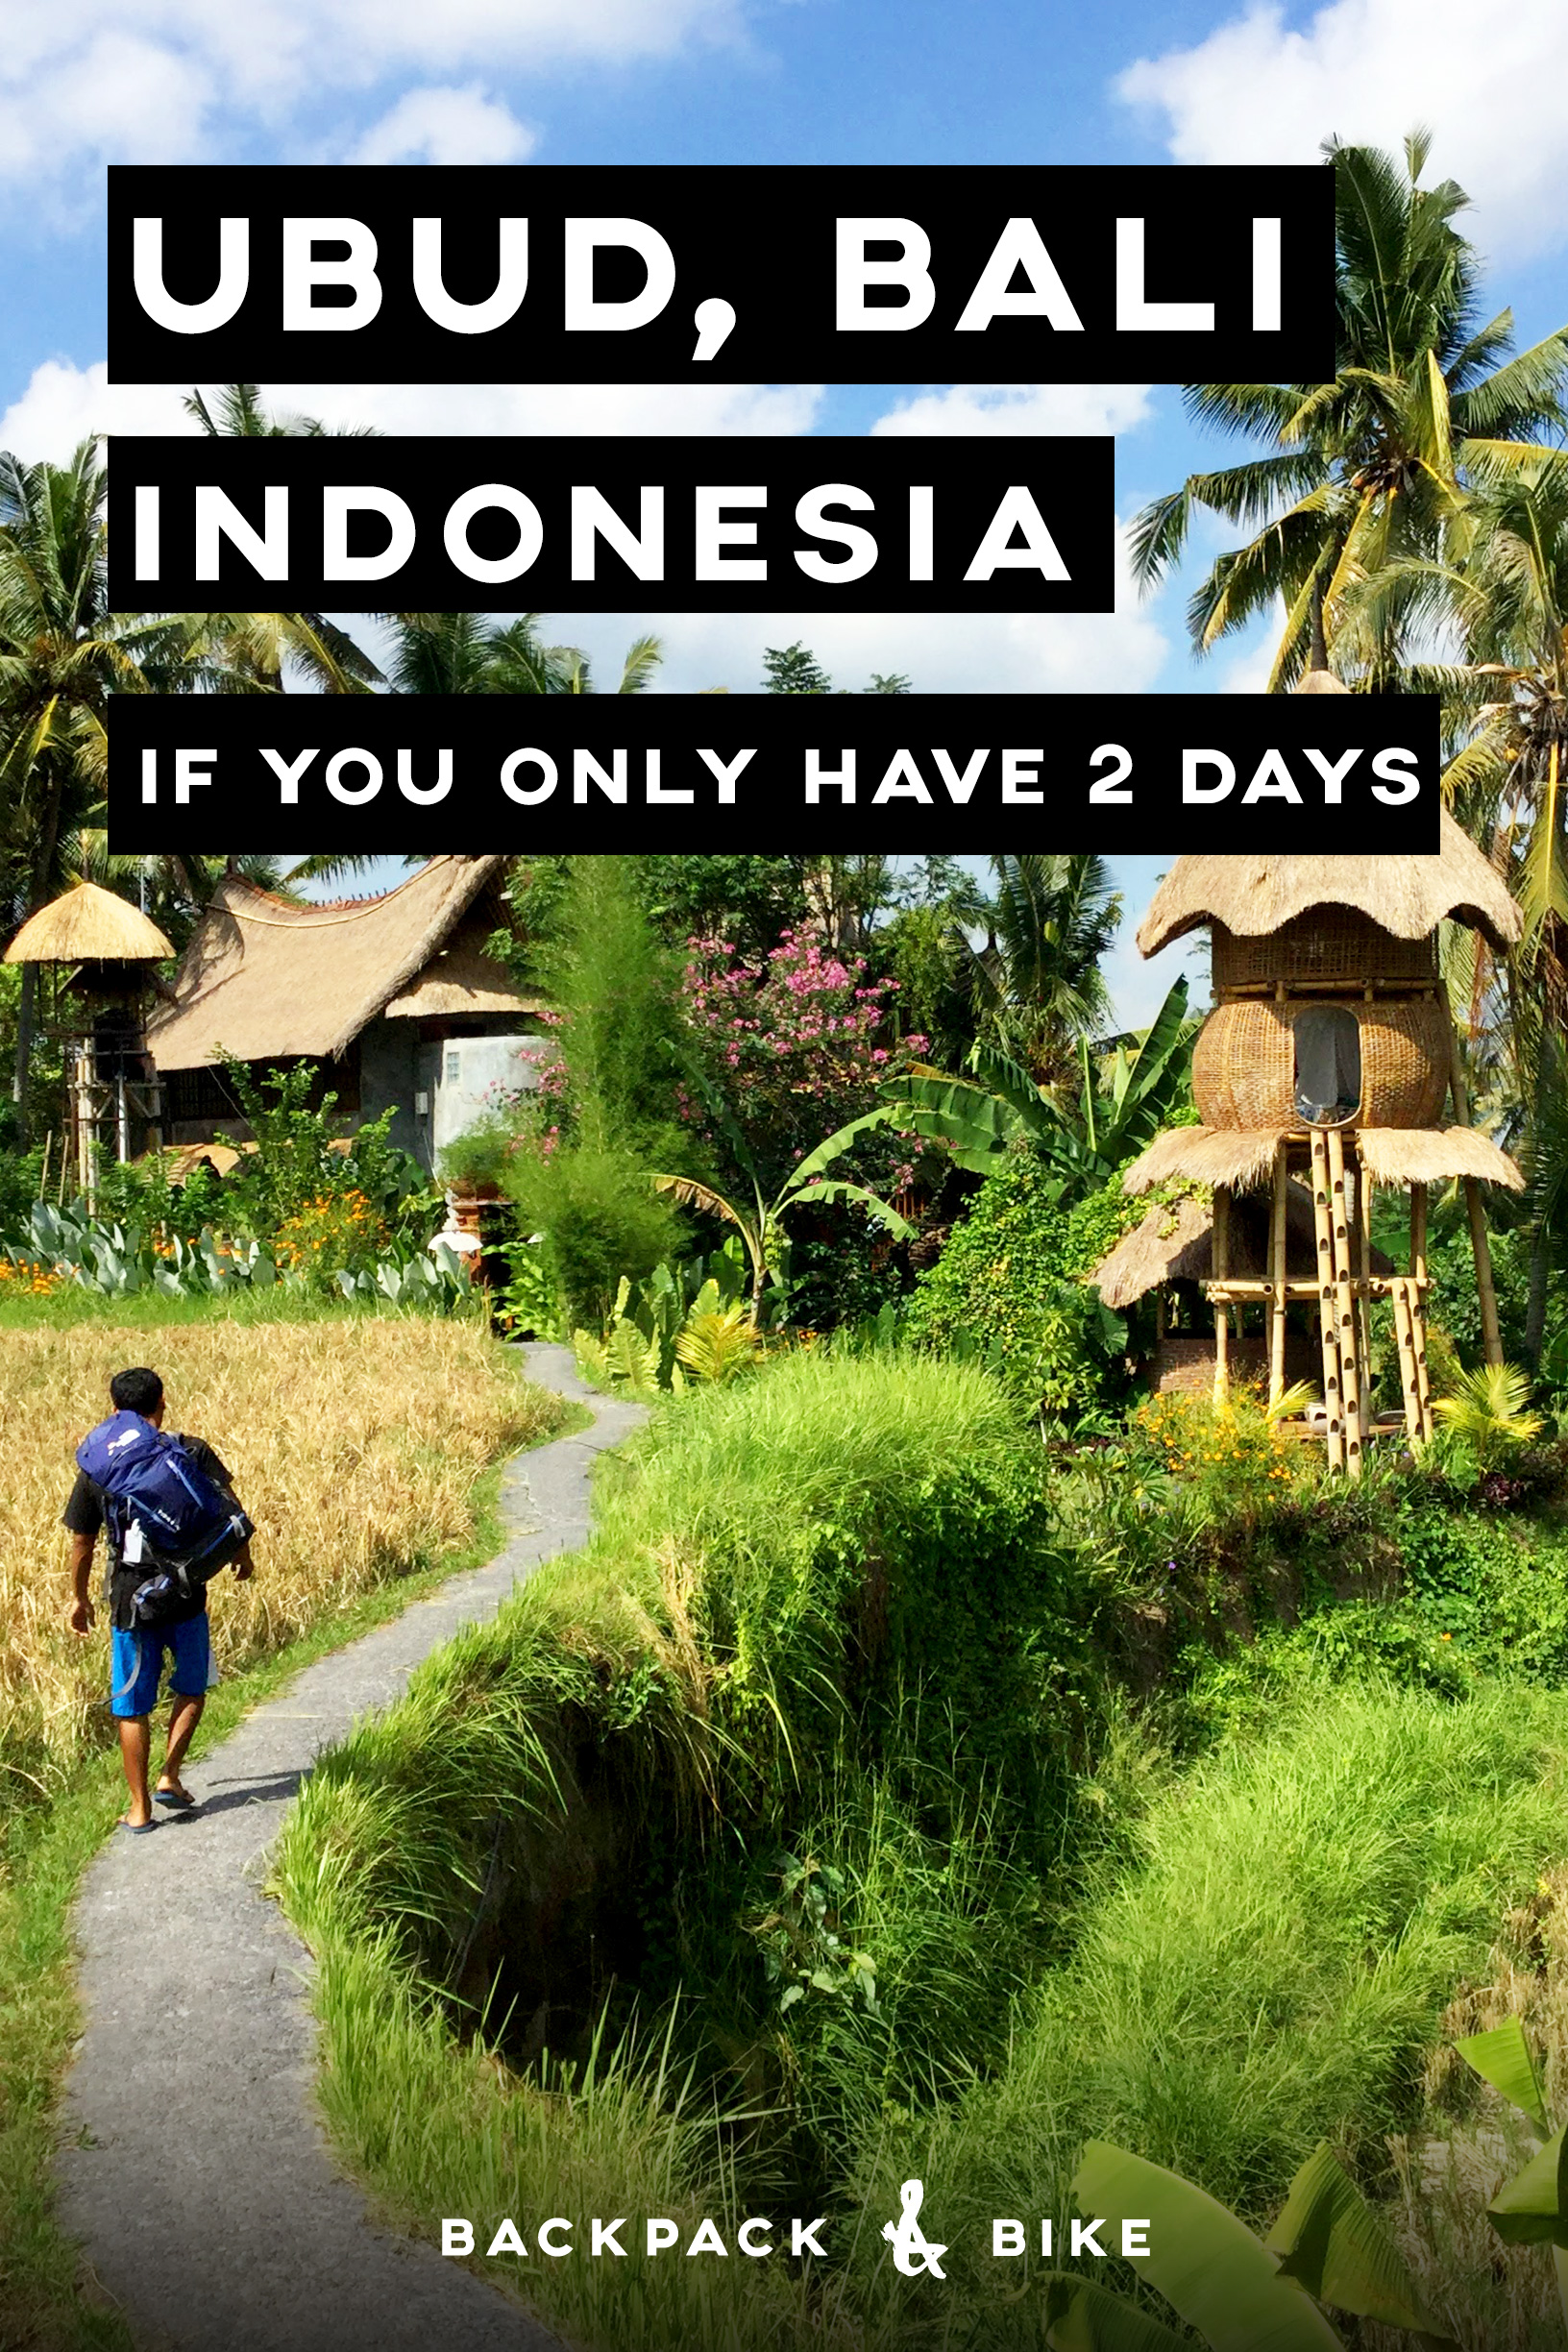 Visiting Ubud Bali if you only have 2 days   When you visit Indonesia, you definitely need to check out Ubud, Bali. If you're only there for a short time, here is how to make the most of it, even on a backpacker budget!